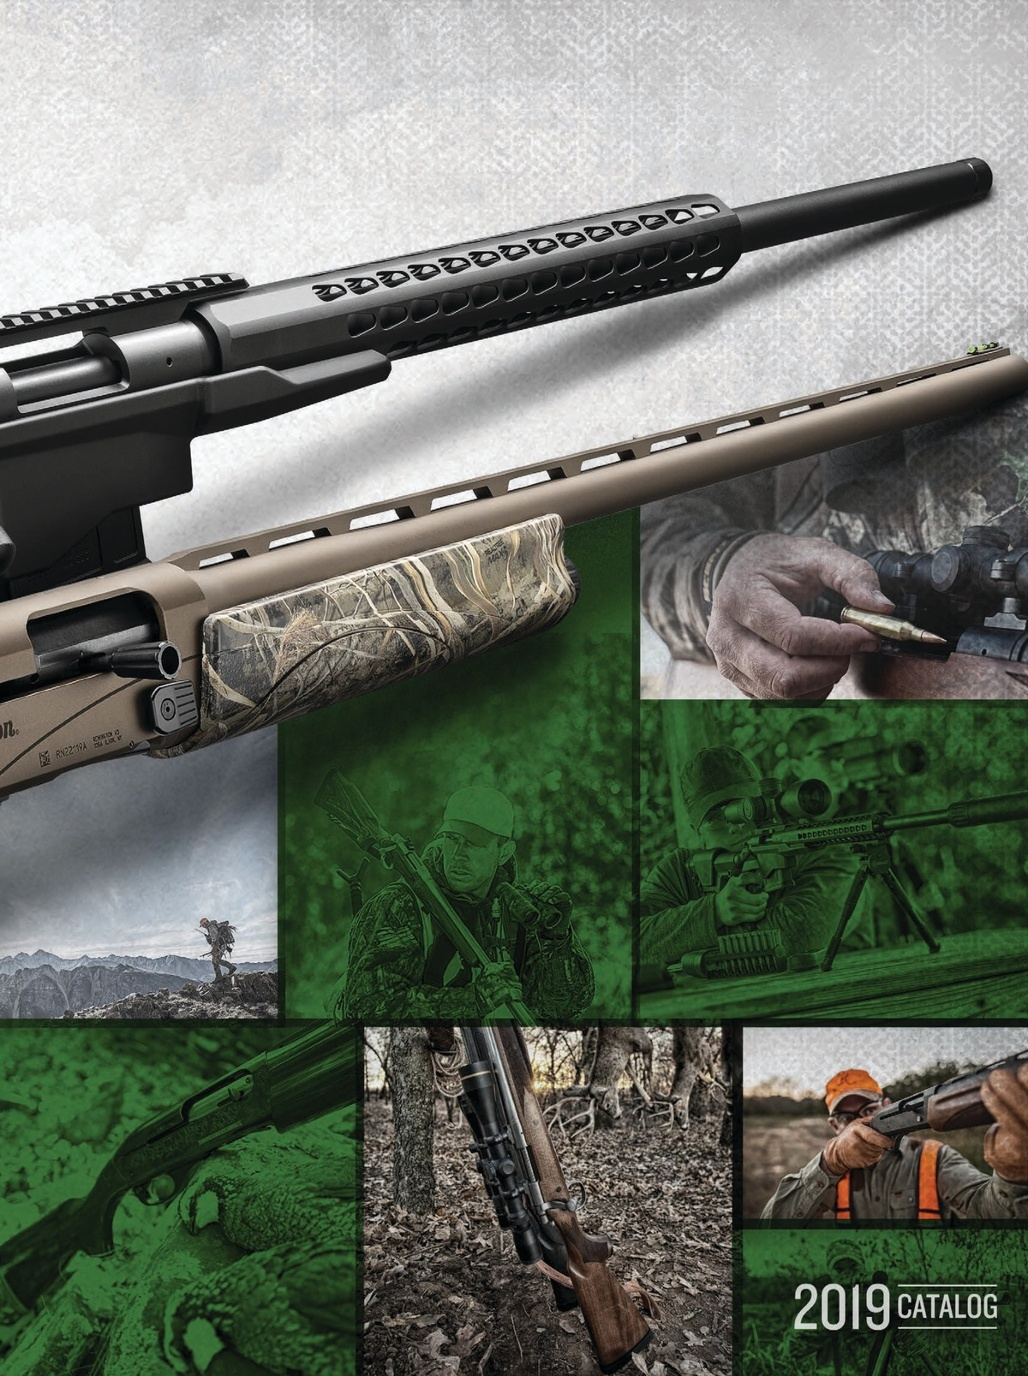 Remington Catalog 2019